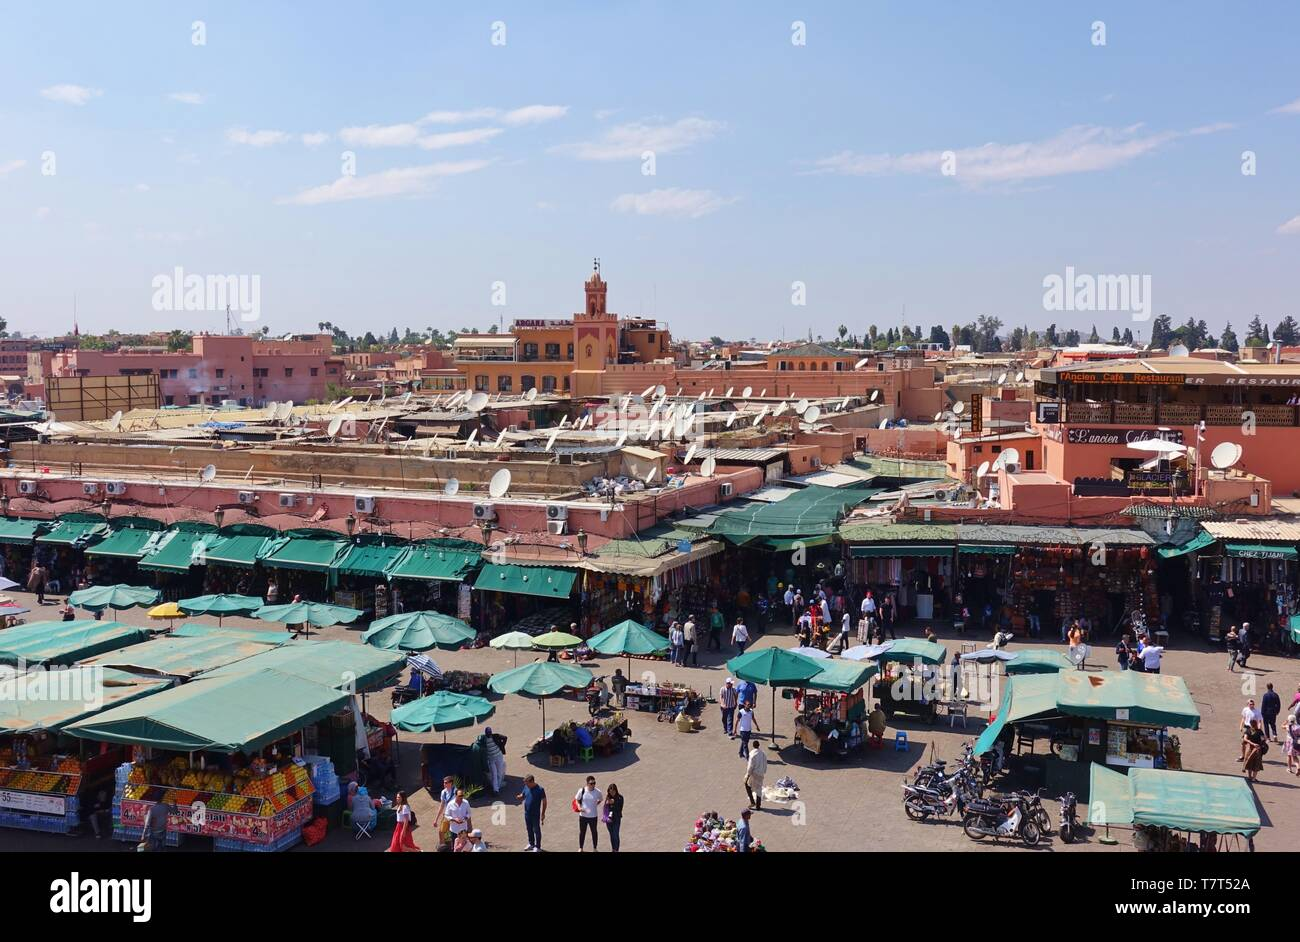 MARRAKESH, MOROCCO –29 MAR 2019- Day view of the Jemaa el-Fnaa, a landmark square and market place and major tourist attraction in Marrakesh, Morocco. Stock Photo